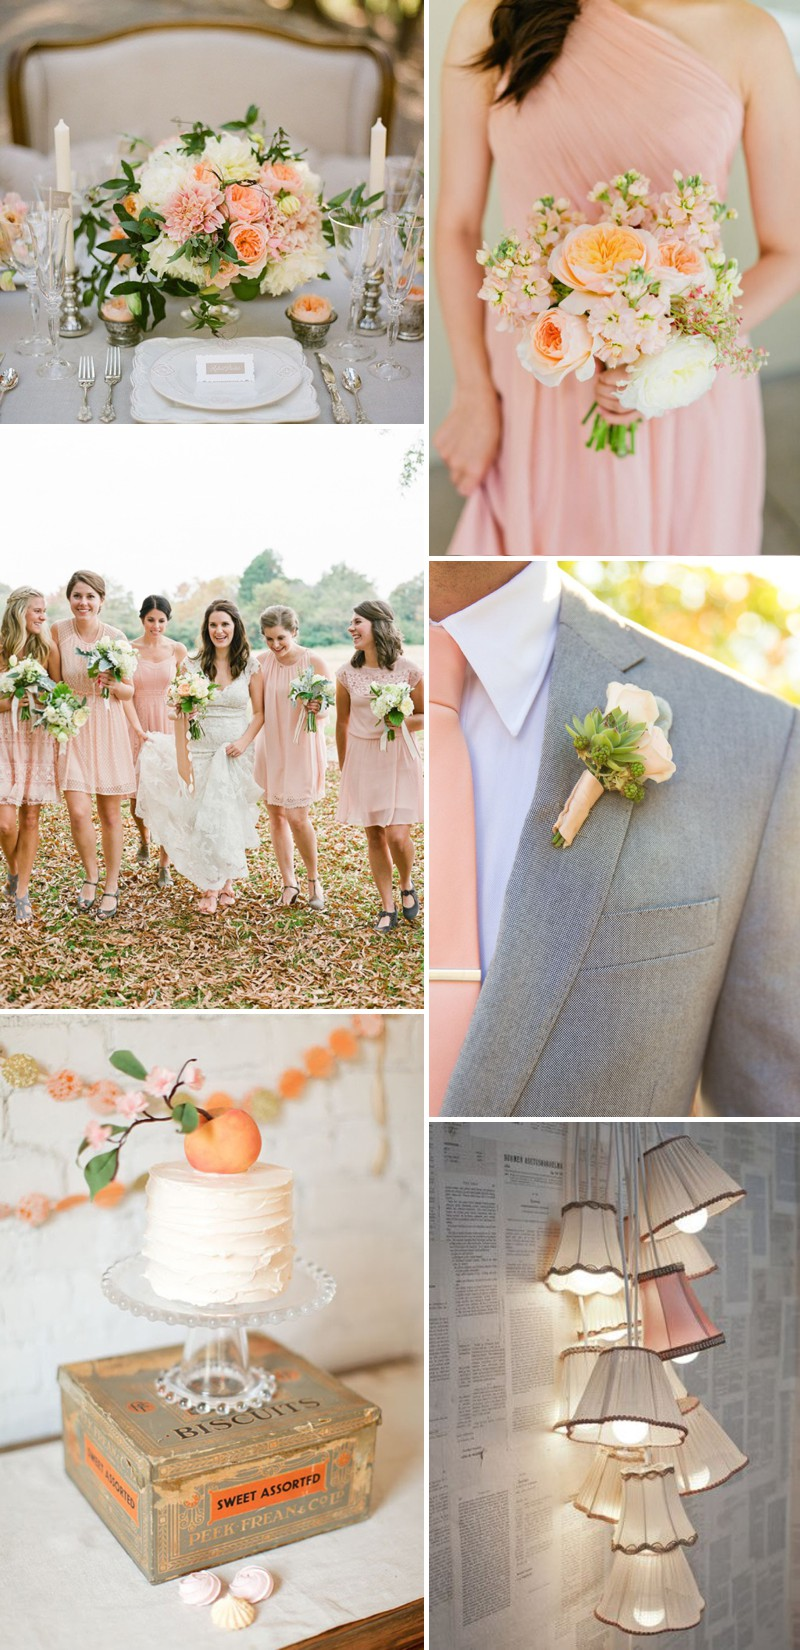 How To Create A Peach Colour Themed Wedding Using Flowers Bridesmaids Cakes And Decor